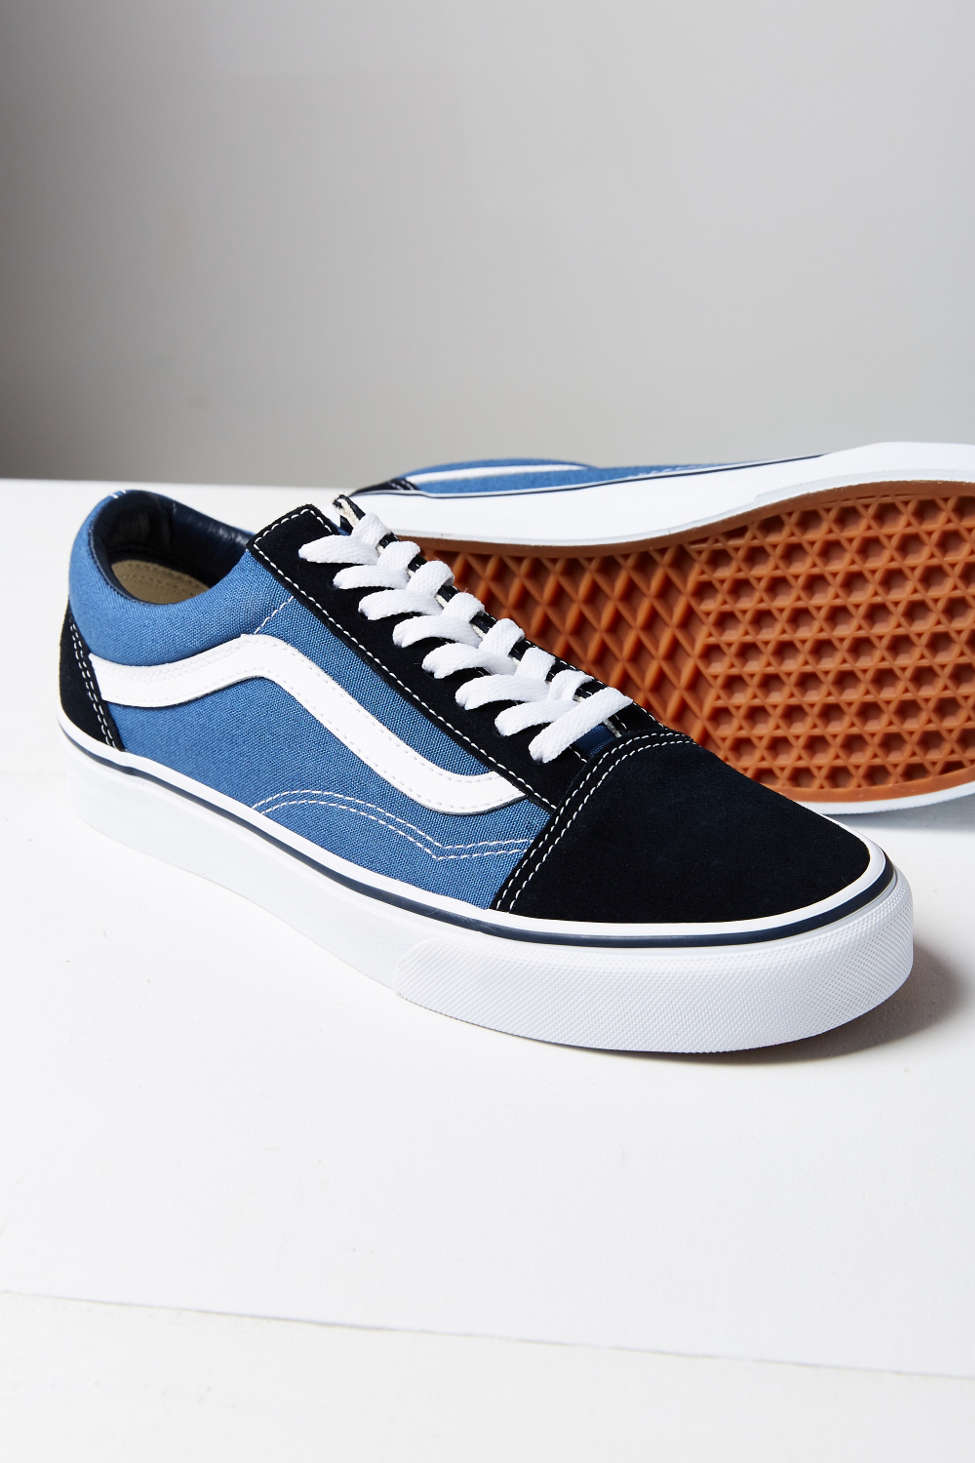 Classic Old Skool Sneakers Vans